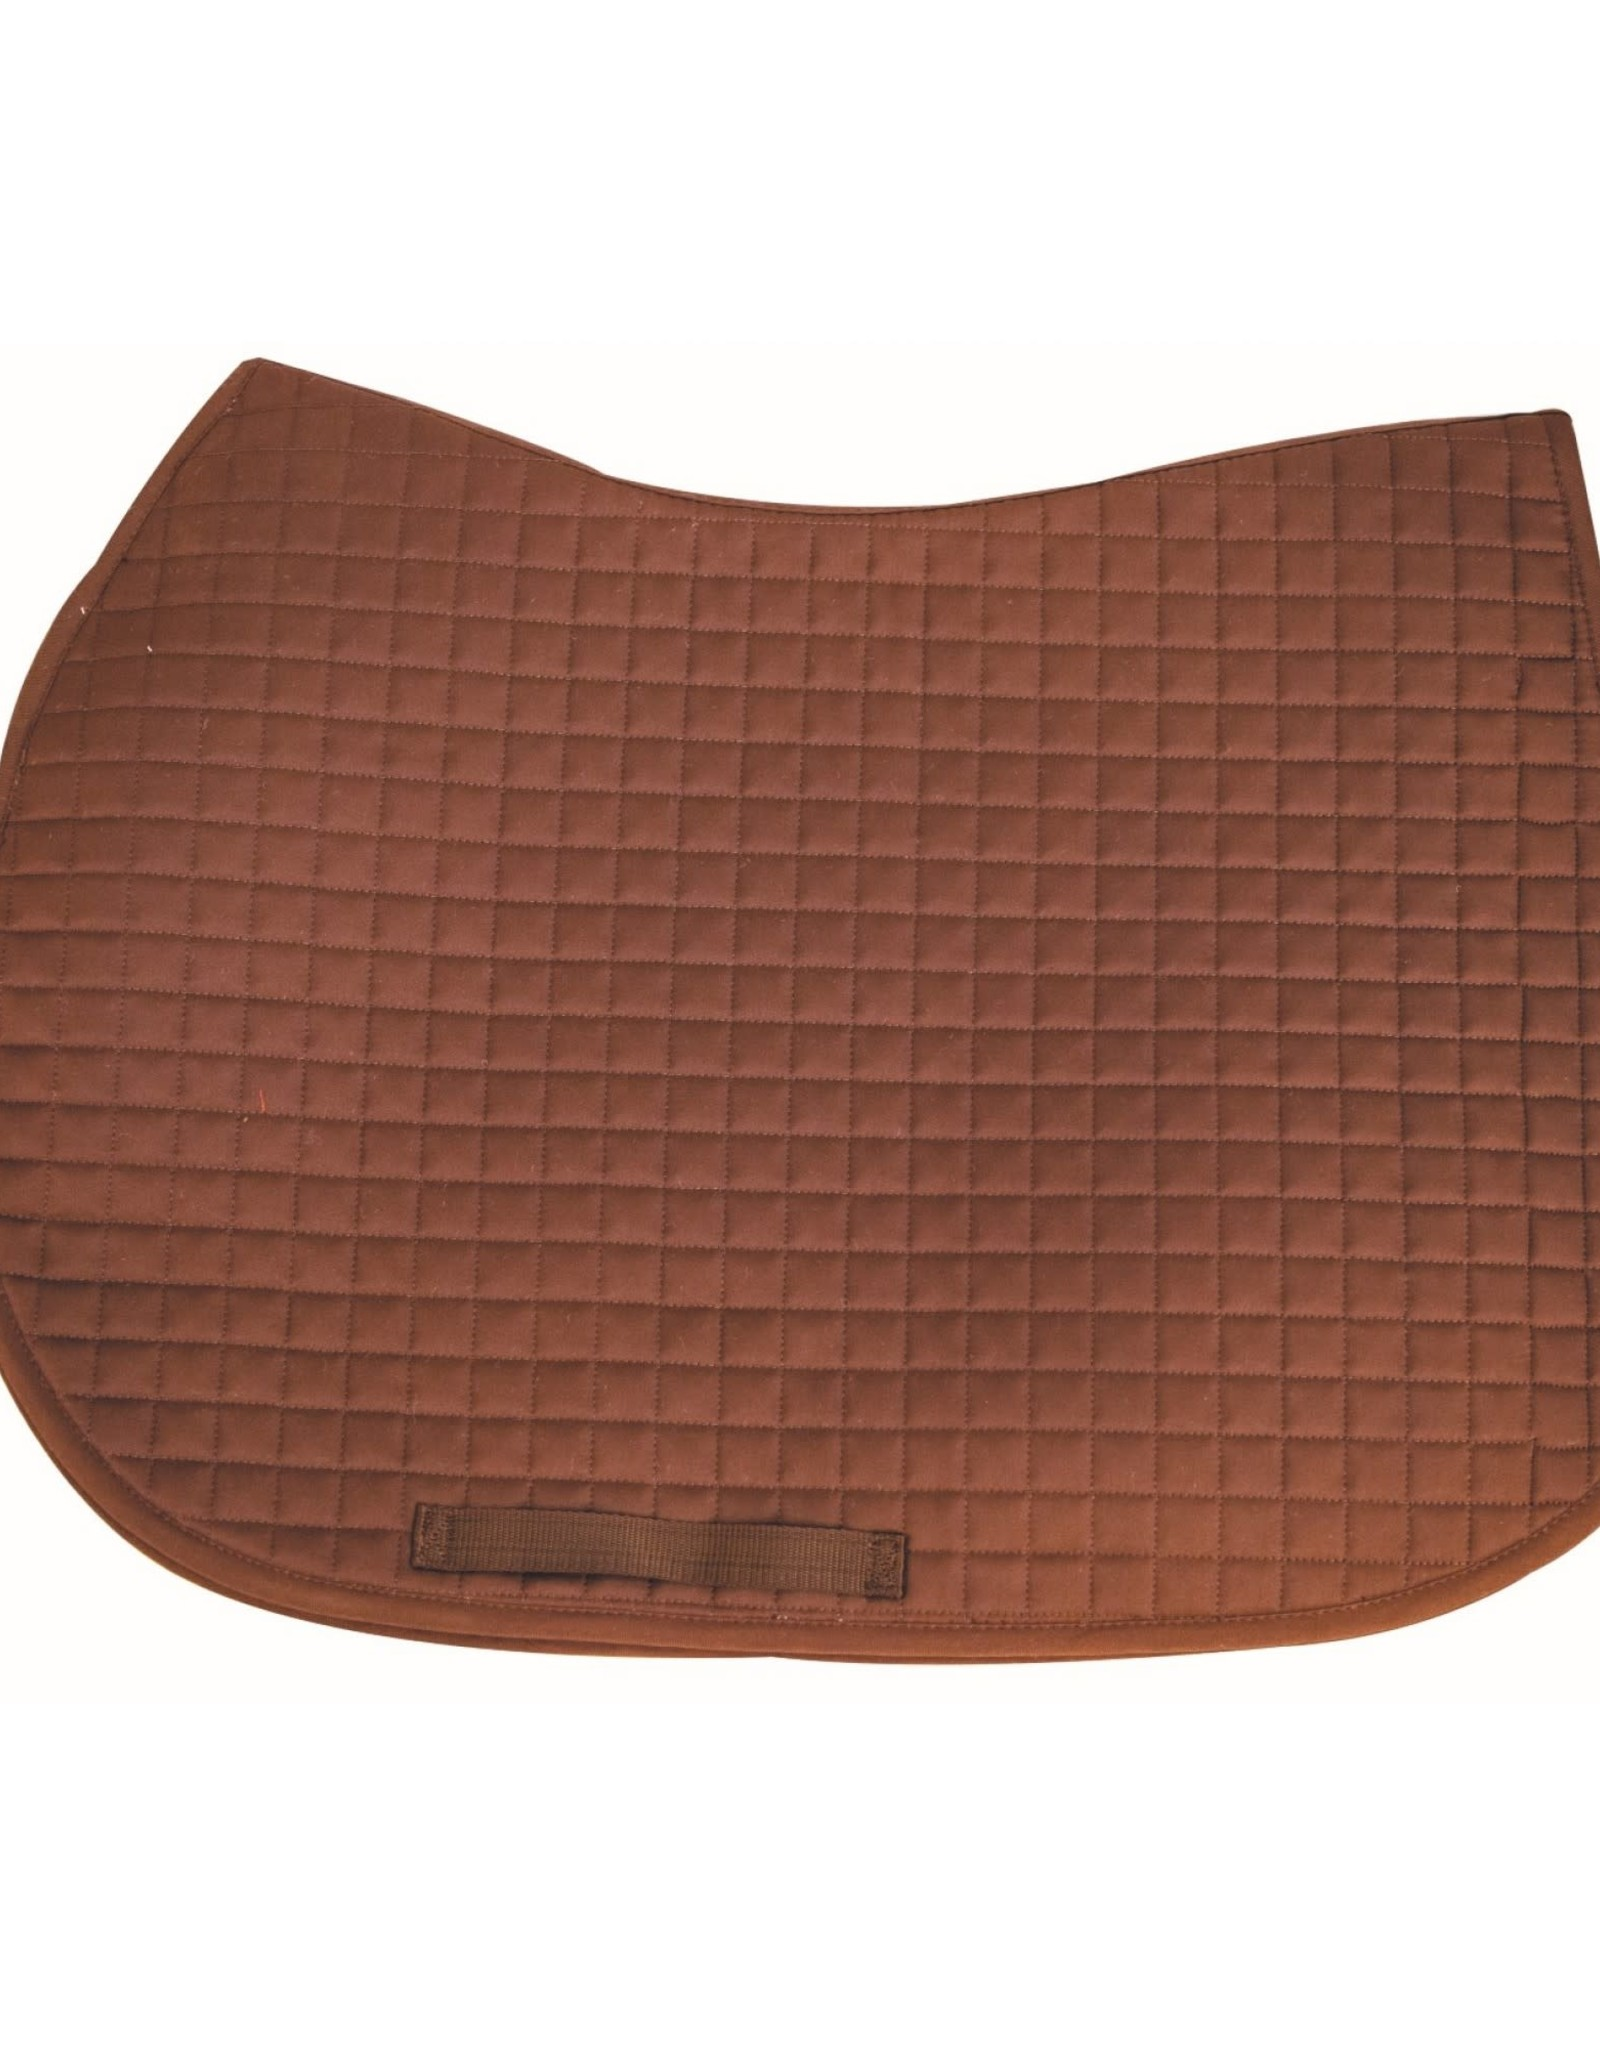 CENTURY CLASSIC QUILTED ALL-PURPOSE SADDLE PAD